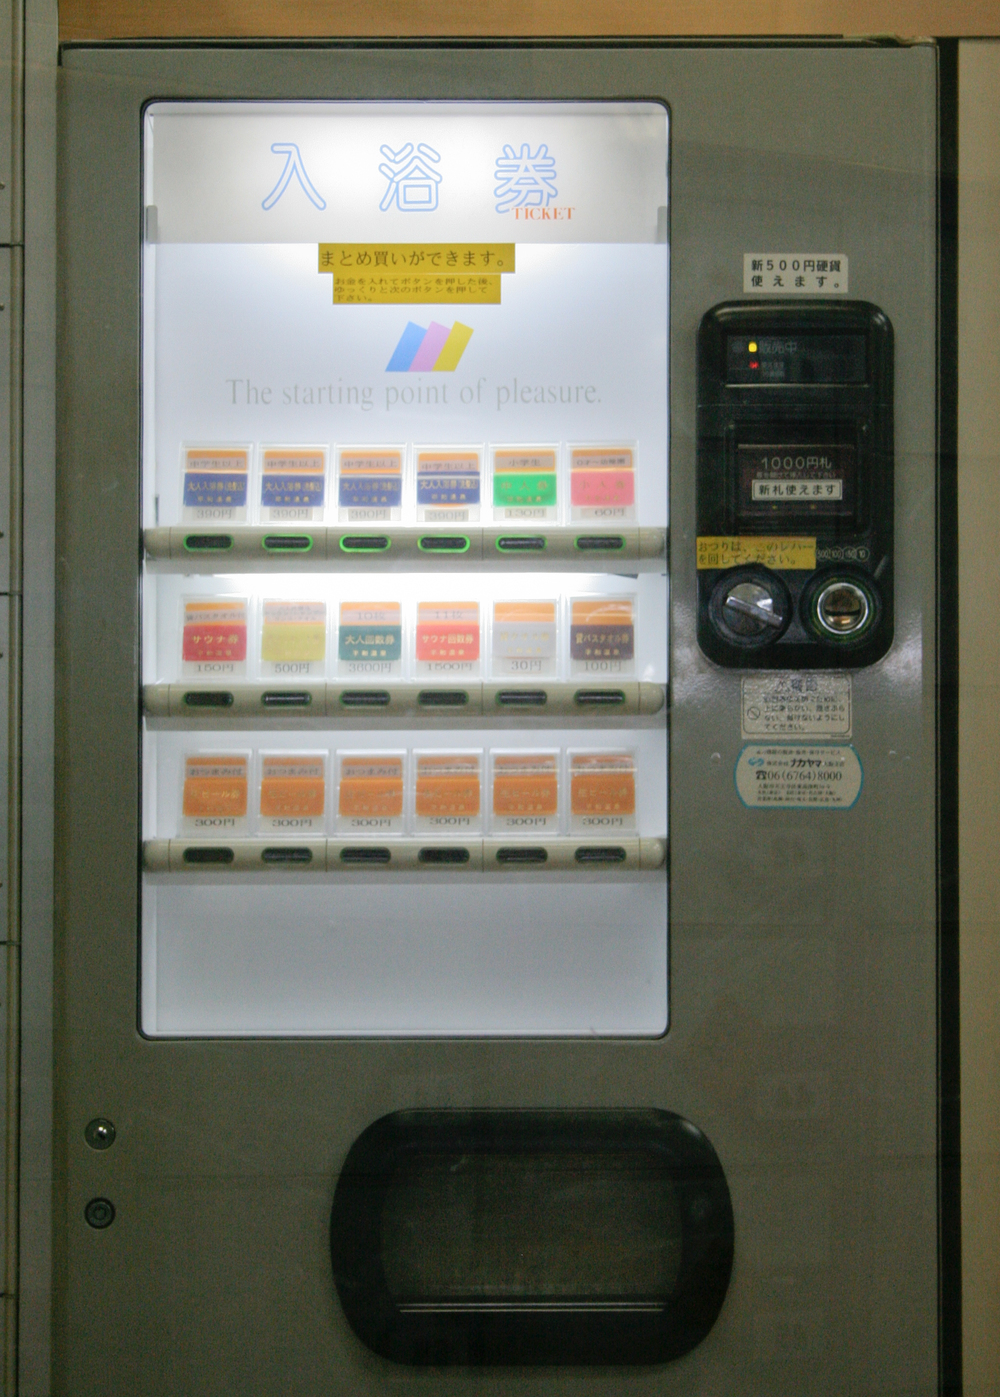 Entrance ticket vending machine